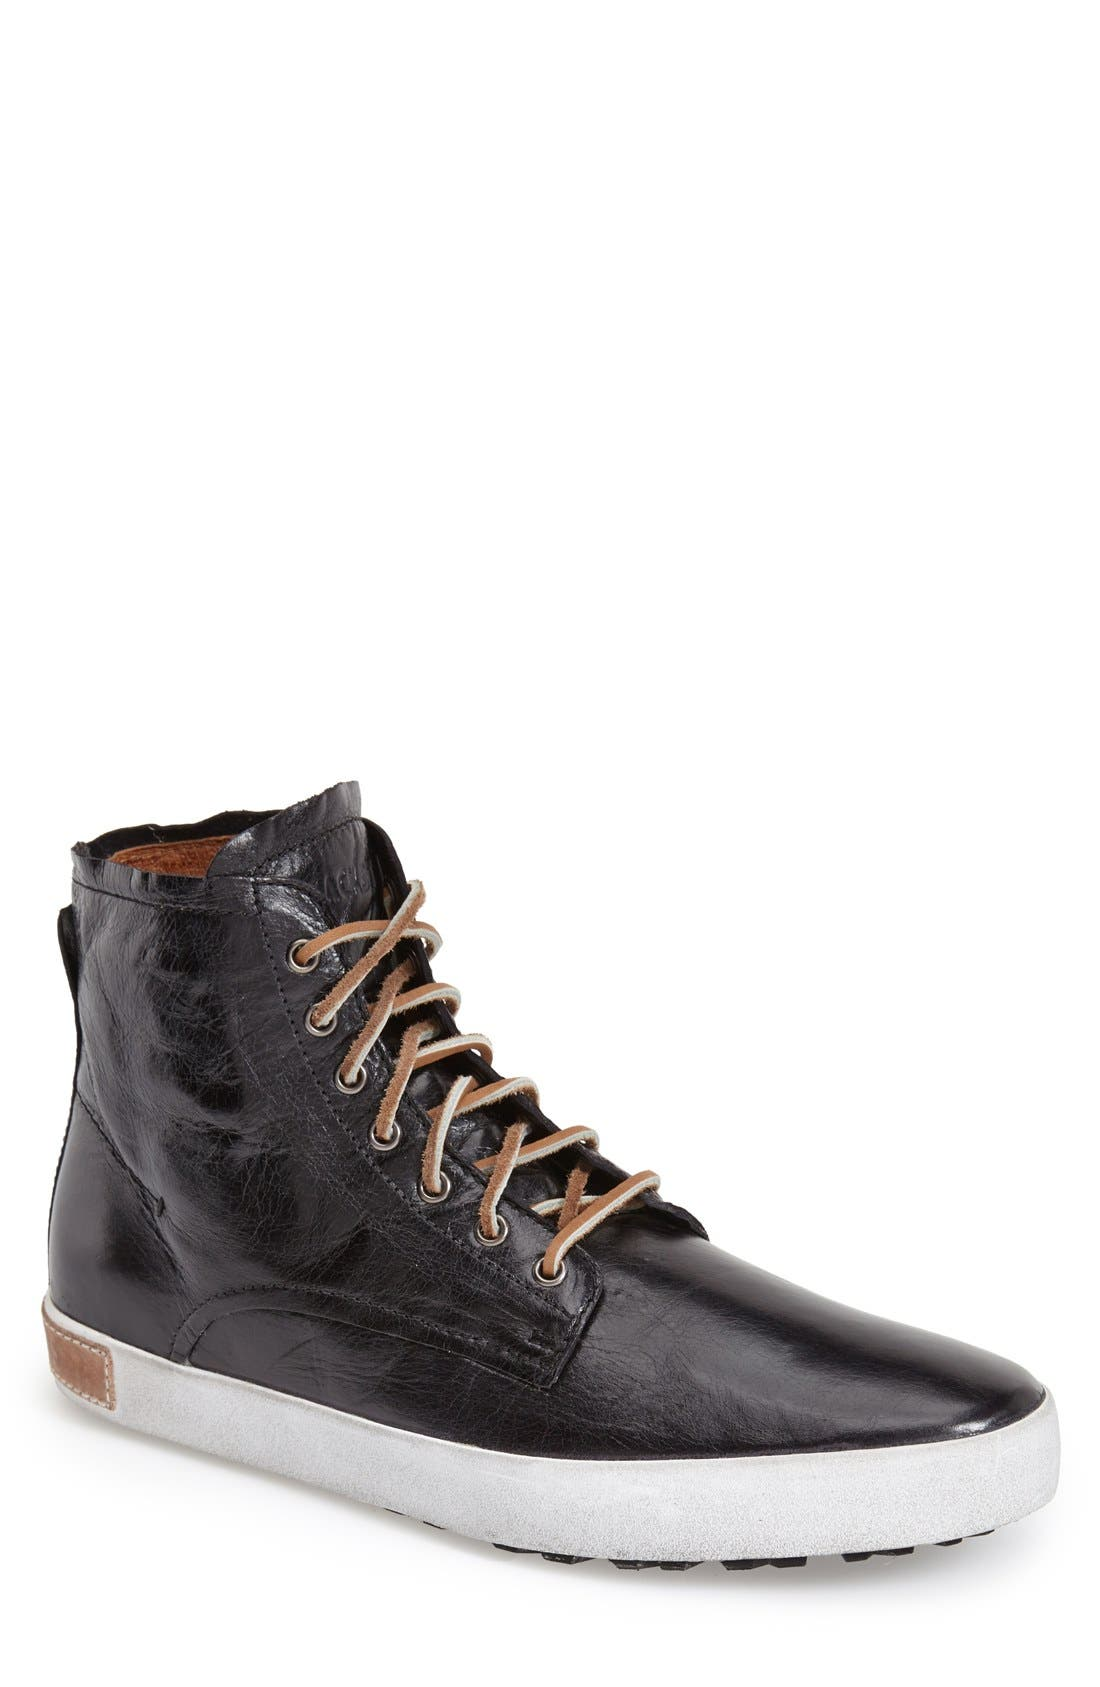 BLACKSTONE 'IM 10' Leather High Top Sneaker